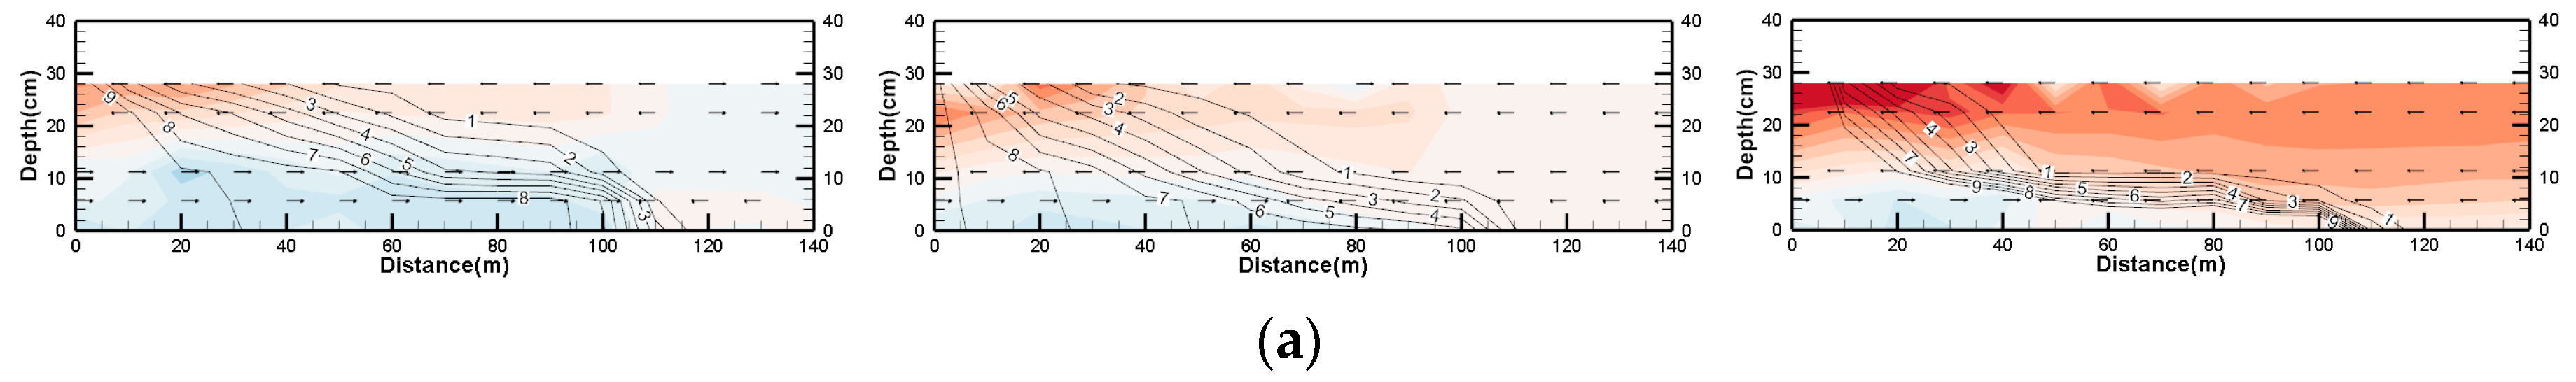 Hydrodynamic instabilities and entrainment in two-layer stratified flows down a slope